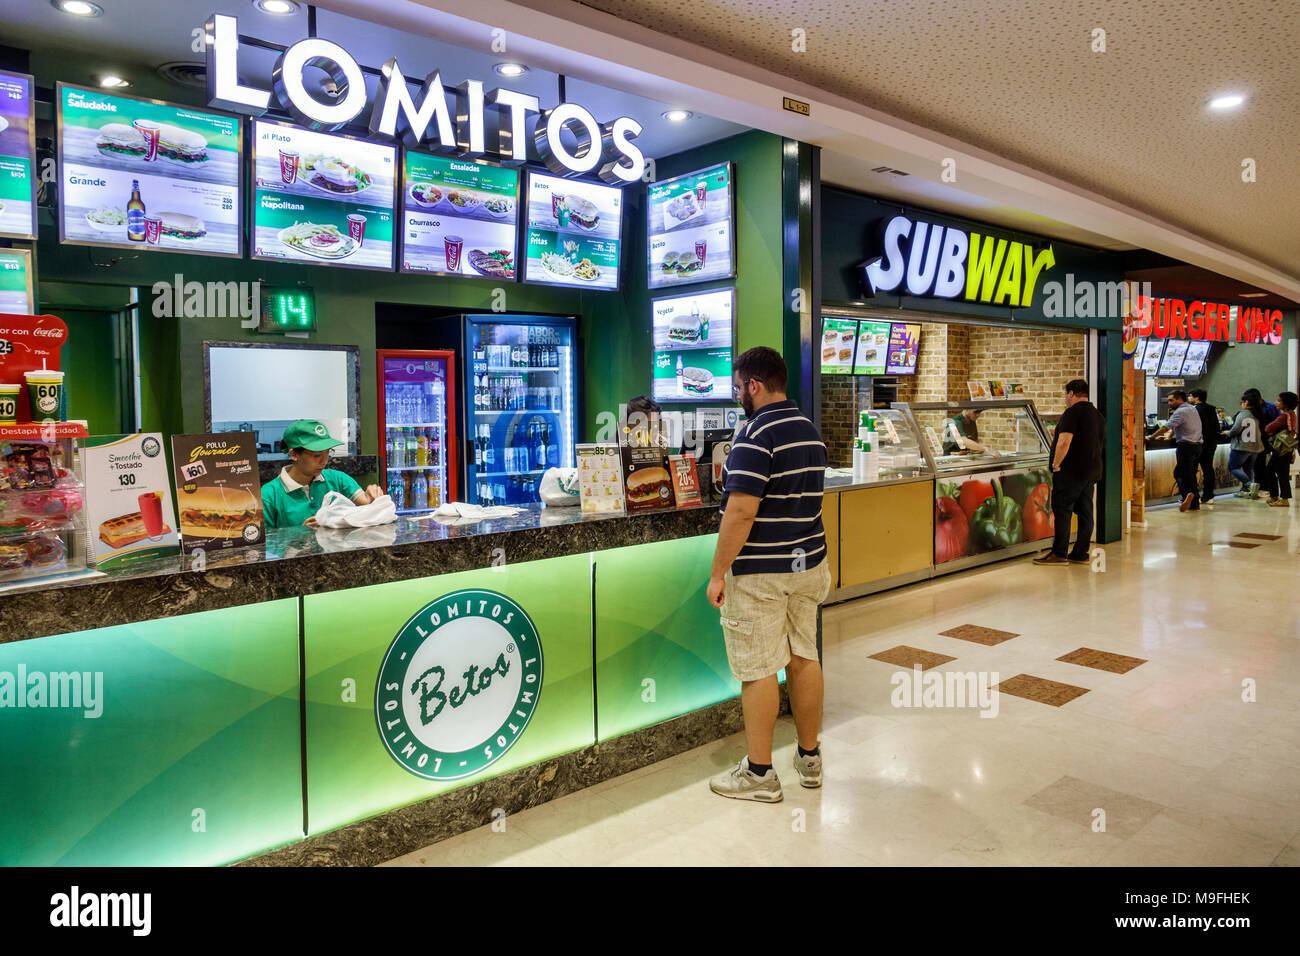 Buenos Aires Argentina Galerias Pacifico food court plaza interior Lomitos steak sandwich shop counter man woman Hispanic Argentinean Argentinian Argentine South America American - Stock Image